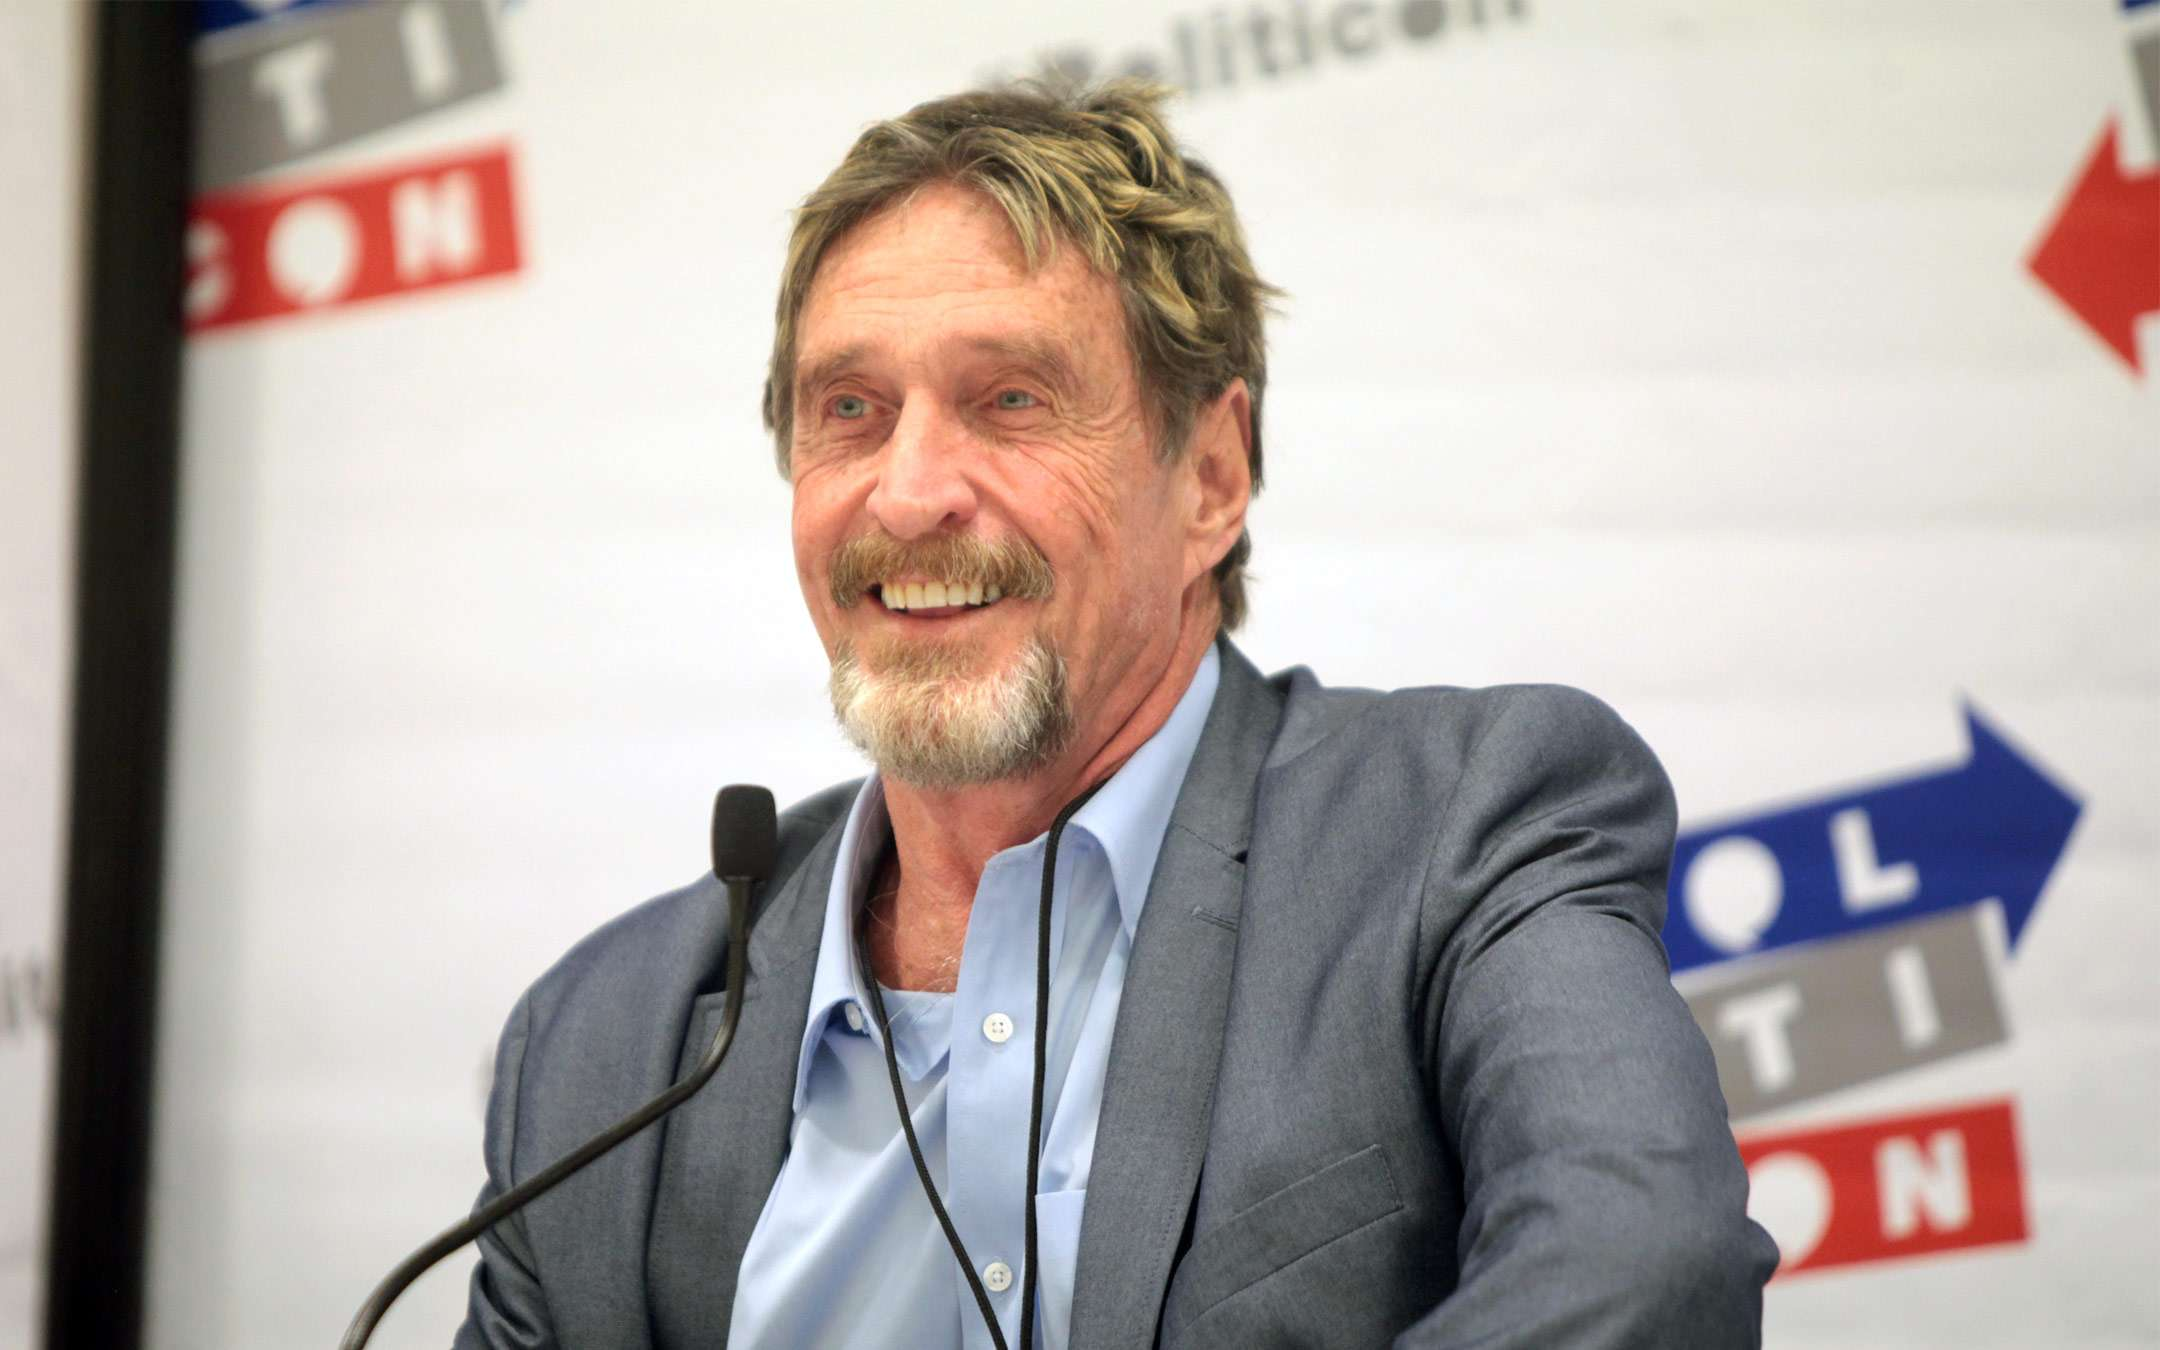 New trouble with the law for John McAfee: scalping